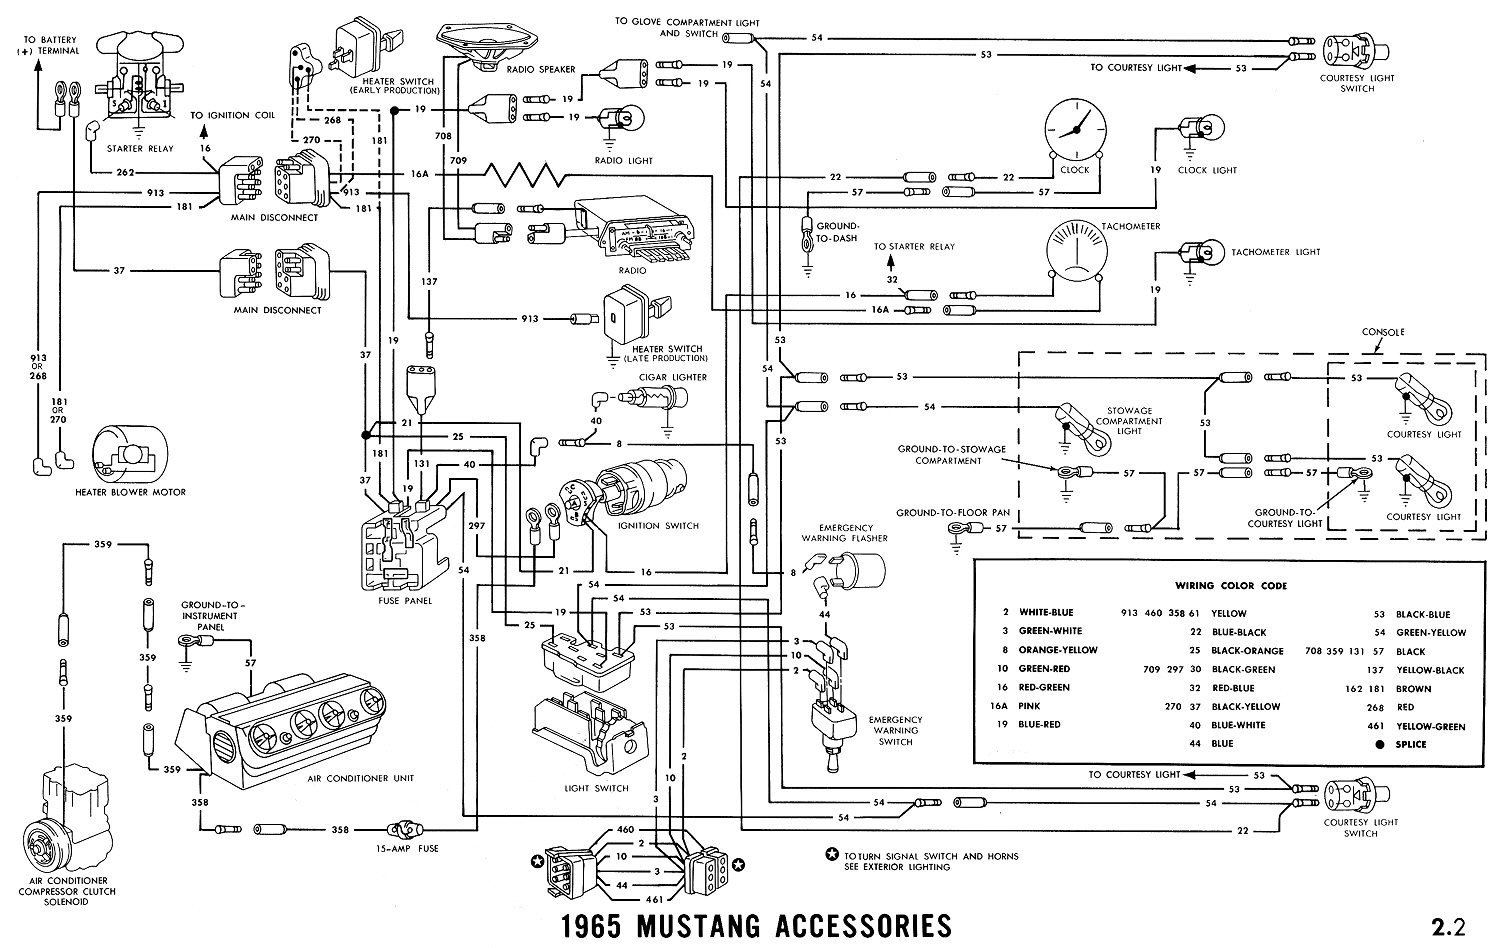 1965i 1965 mustang wiring diagrams average joe restoration 1969 mustang wiring harness at creativeand.co